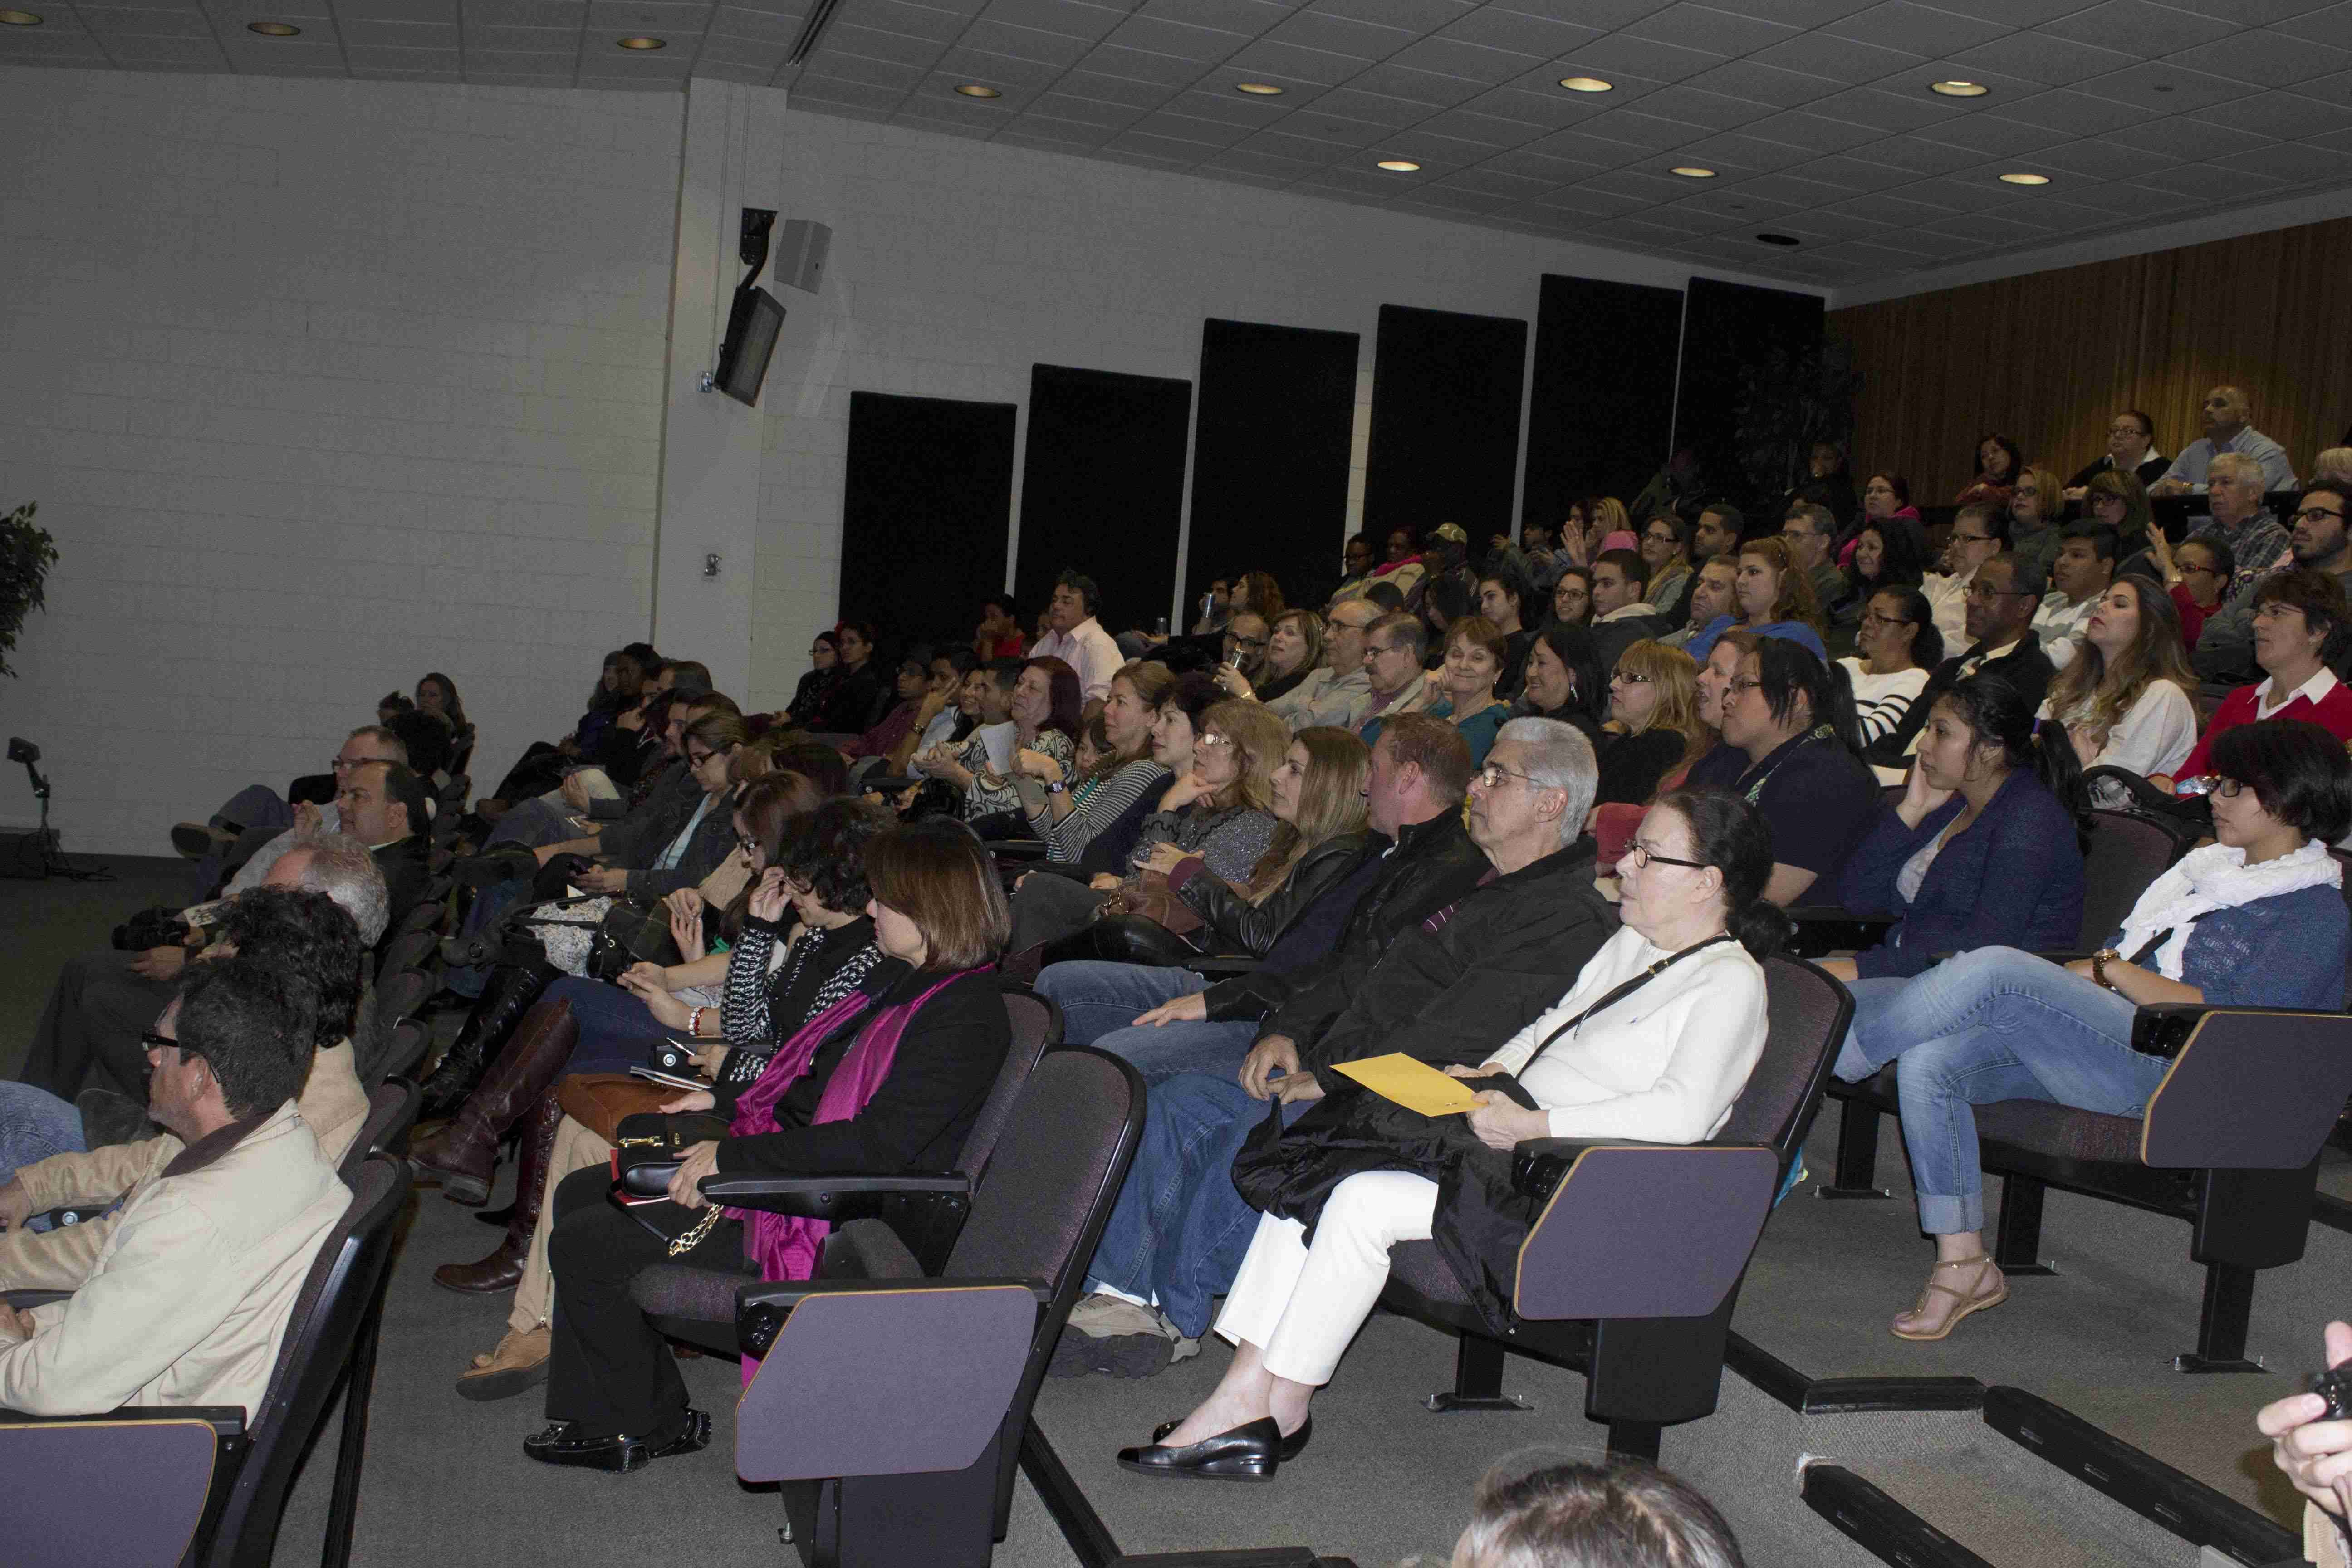 Day+One+of+the+7th+annual+Valencia+Brazilian+Film+Festival+kicked+off+with+a+welcoming+reception+and+a+screening+of+%22Colegas%22+%28Ty+Wright+%2F+Valencia+Voice%29